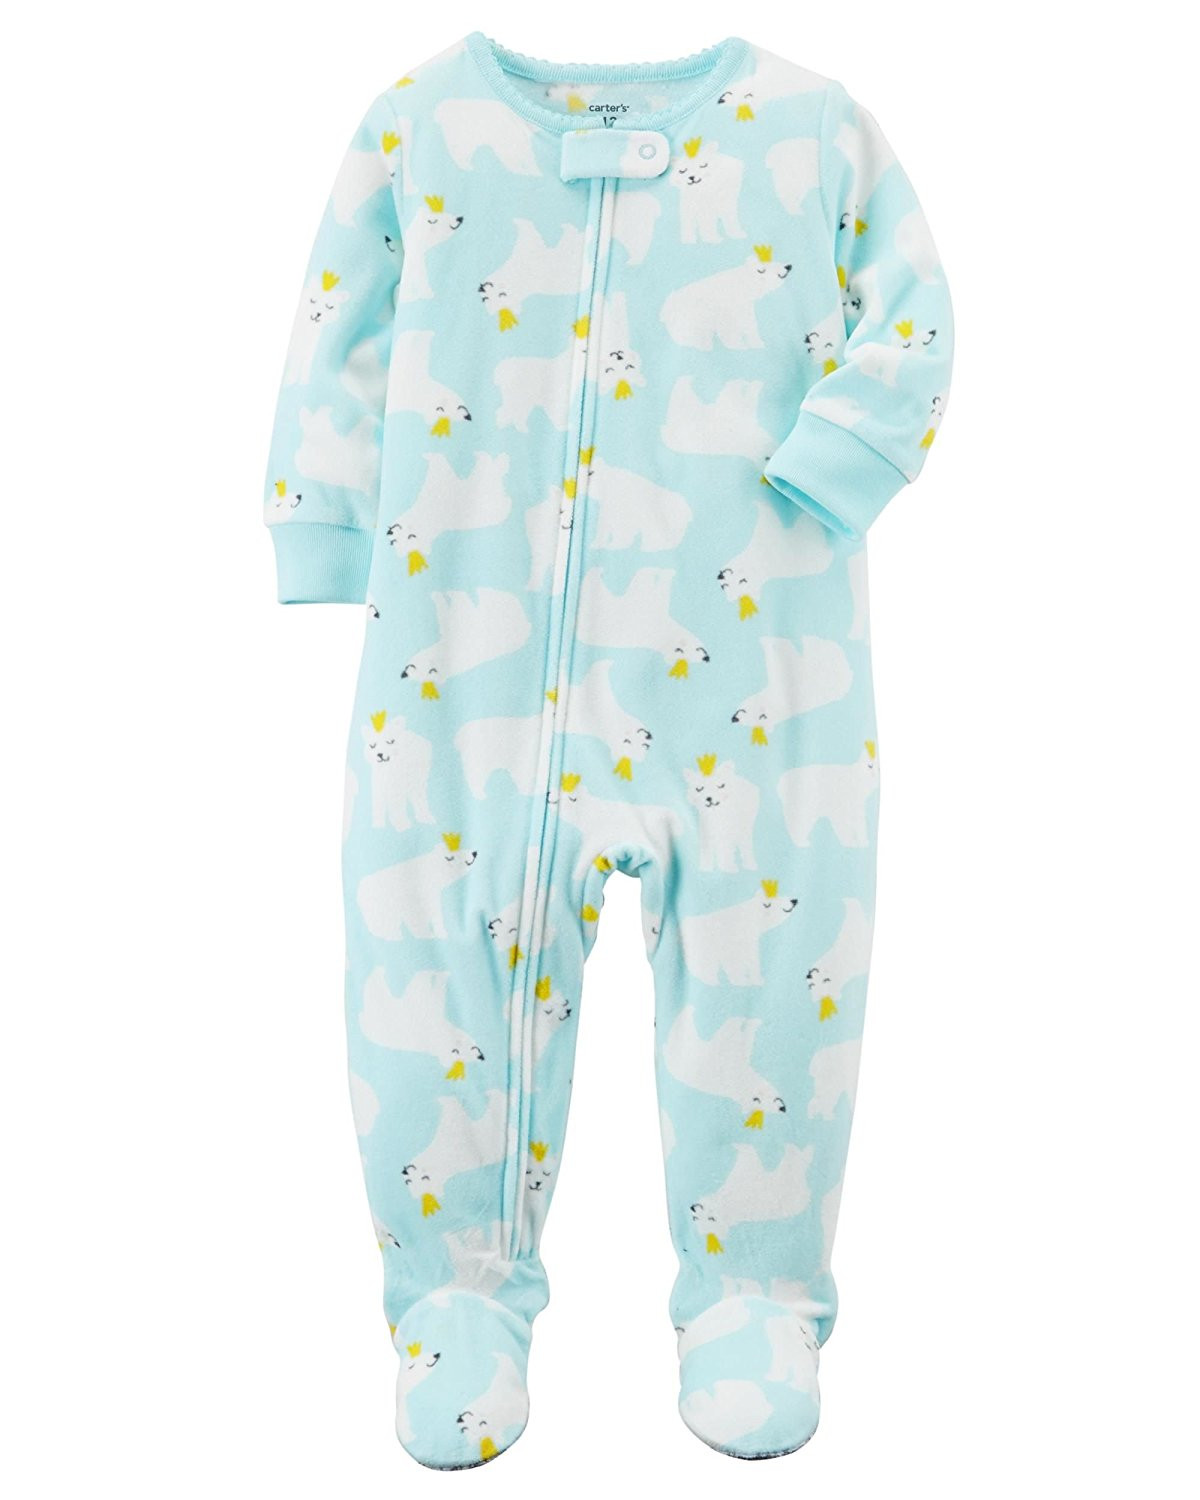 Baby Footed Pajamas Best Of Carter S Baby Girls 1 Piece Footed Fleece Pajamas Of Amazing 42 Pictures Baby Footed Pajamas